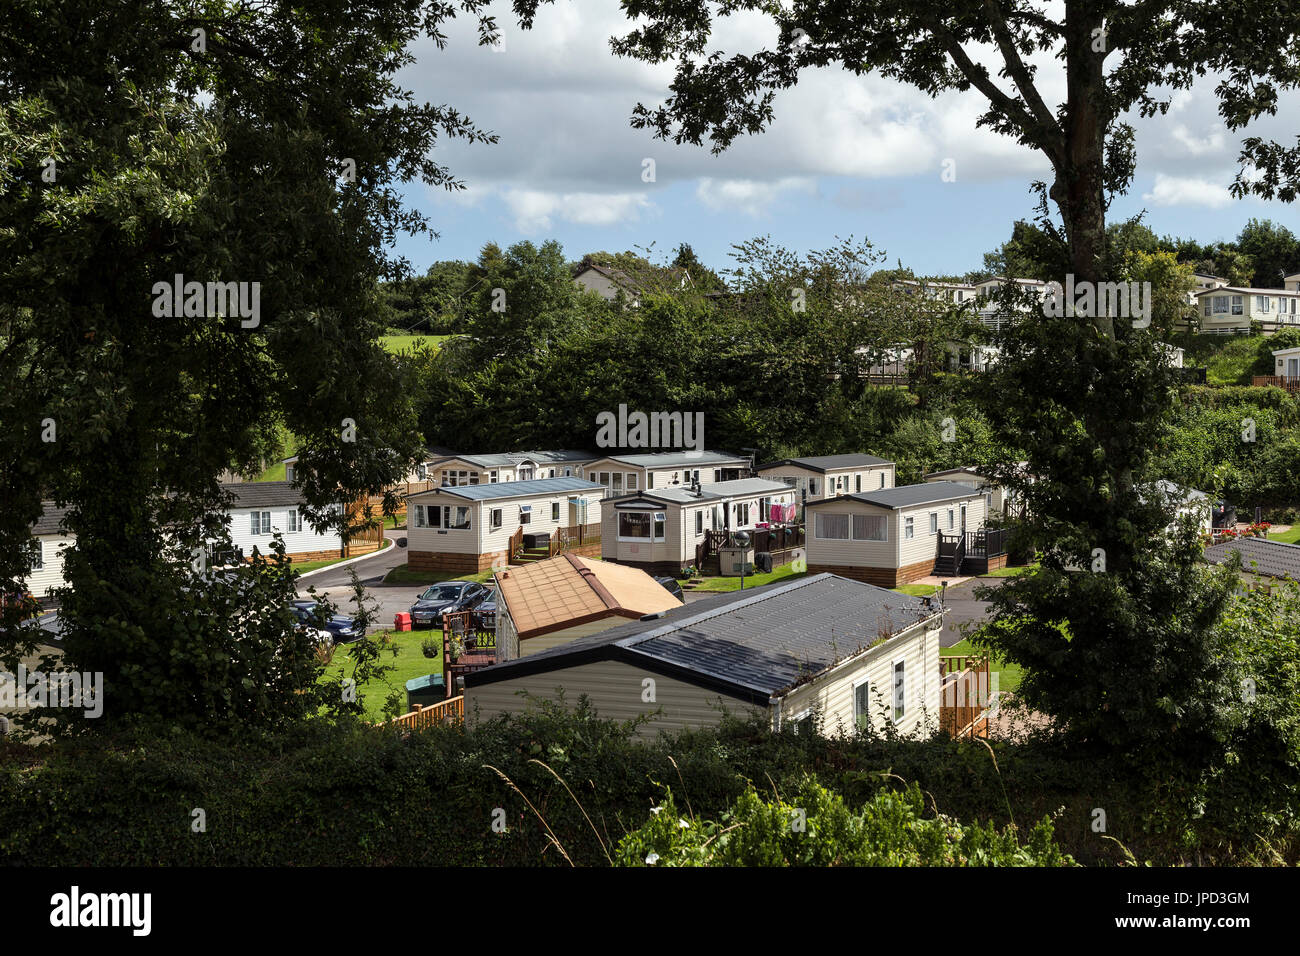 Trailer Home, Trailer Park, Tree, Grass, Horizontal, House Rental, Nature, No People, Outdoors, Residential District, Stock Photo